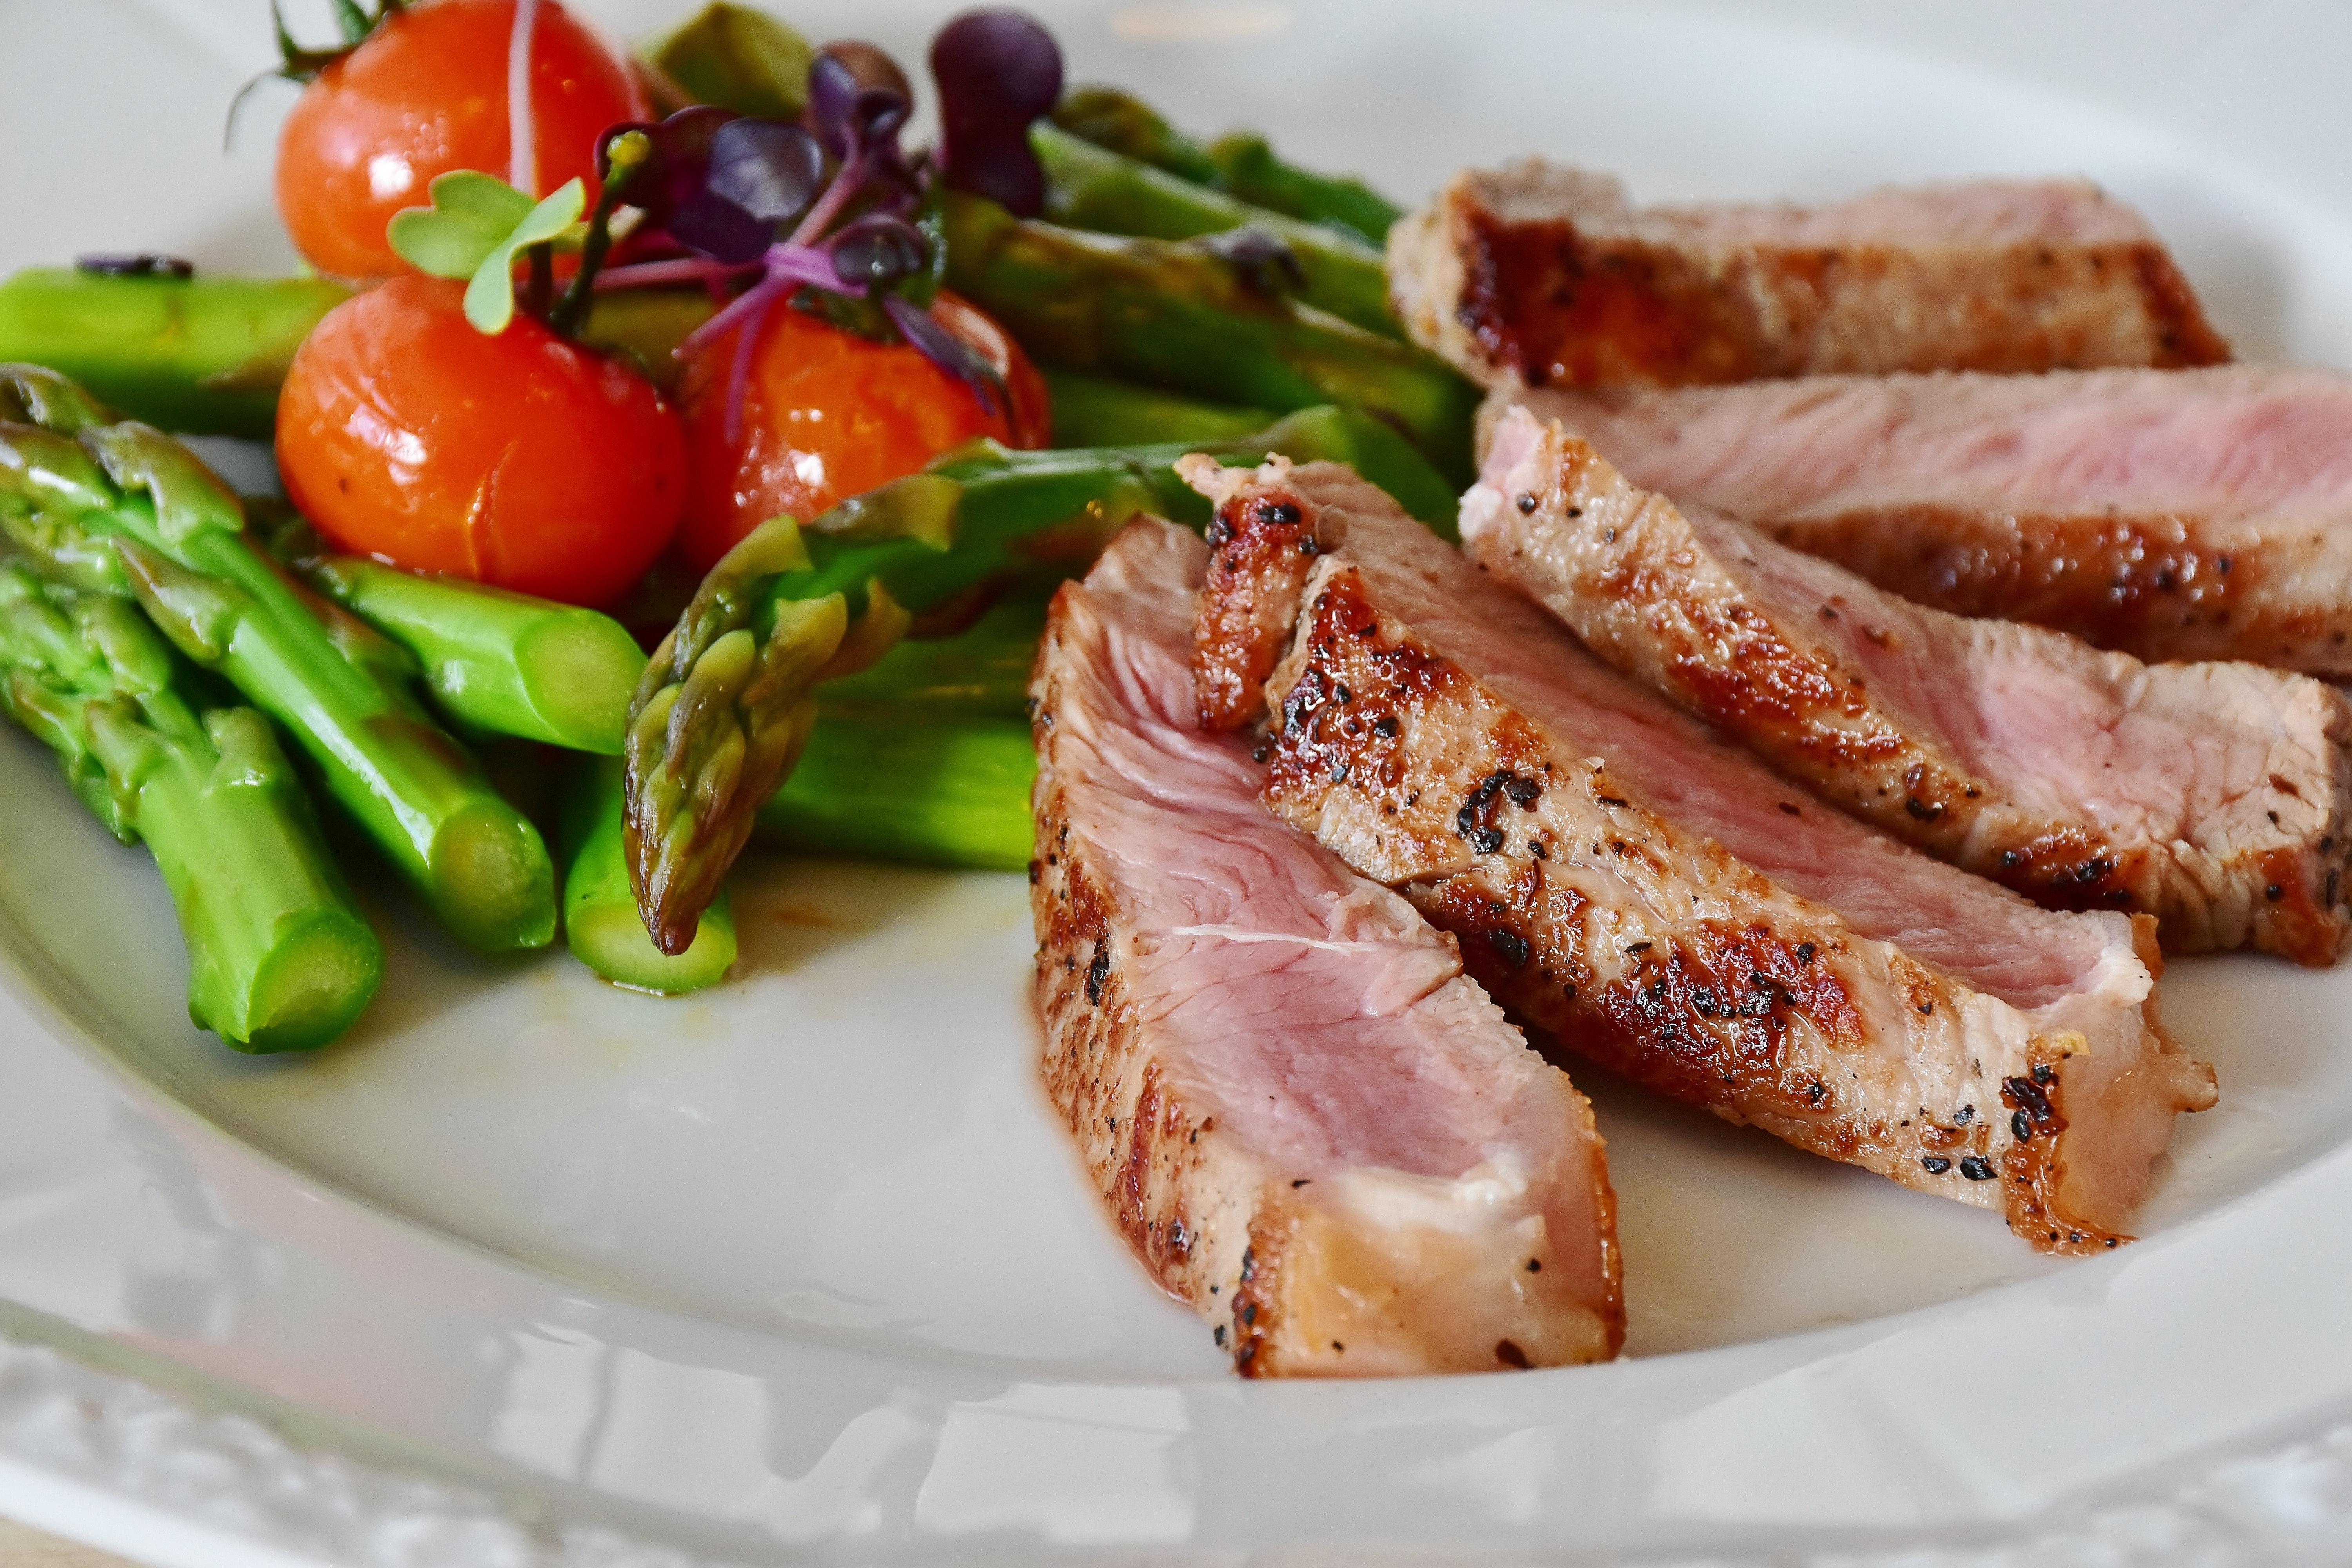 asparagus-steak-veal-steak-veal-361184.jpeg?cs=srgb&dl=pexels-pixabay-361184.jpg&fm=jpg